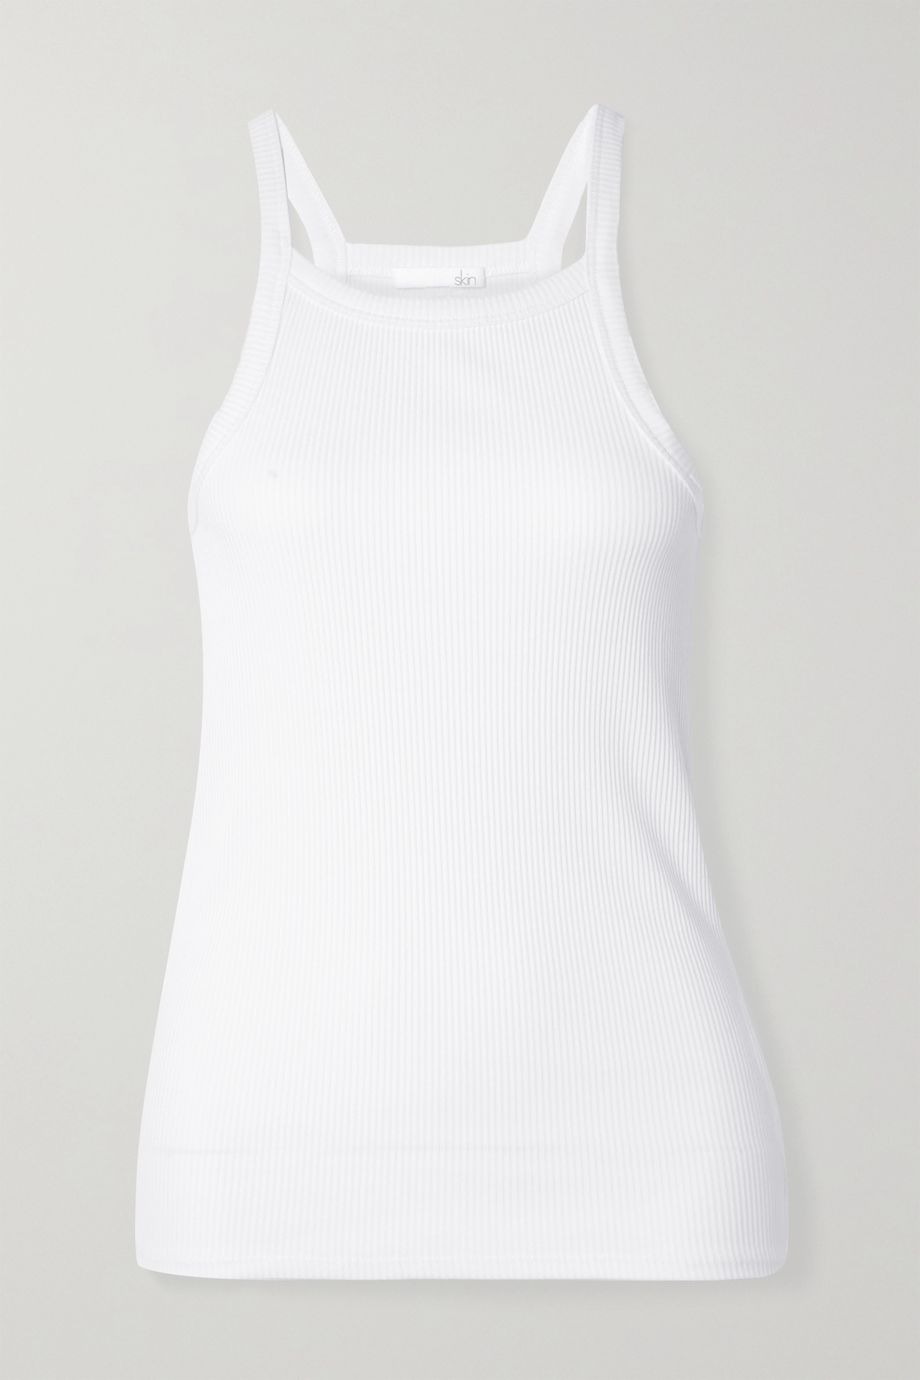 Skin Imogen ribbed stretch-Pima cotton jersey tank